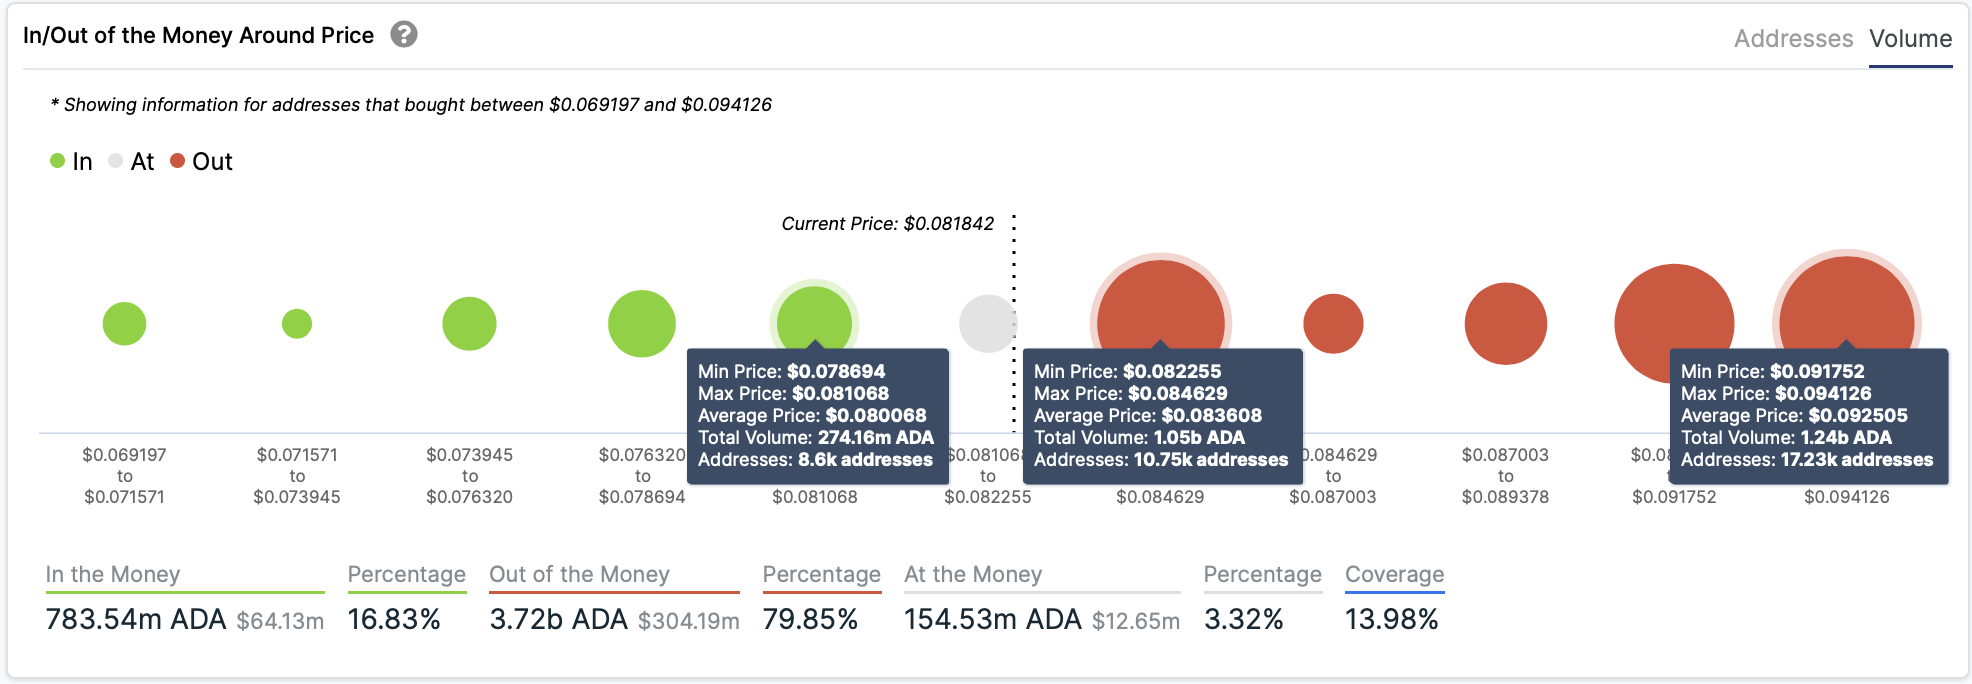 Cardano In/Out of the Money Around Price by IntoTheBlock